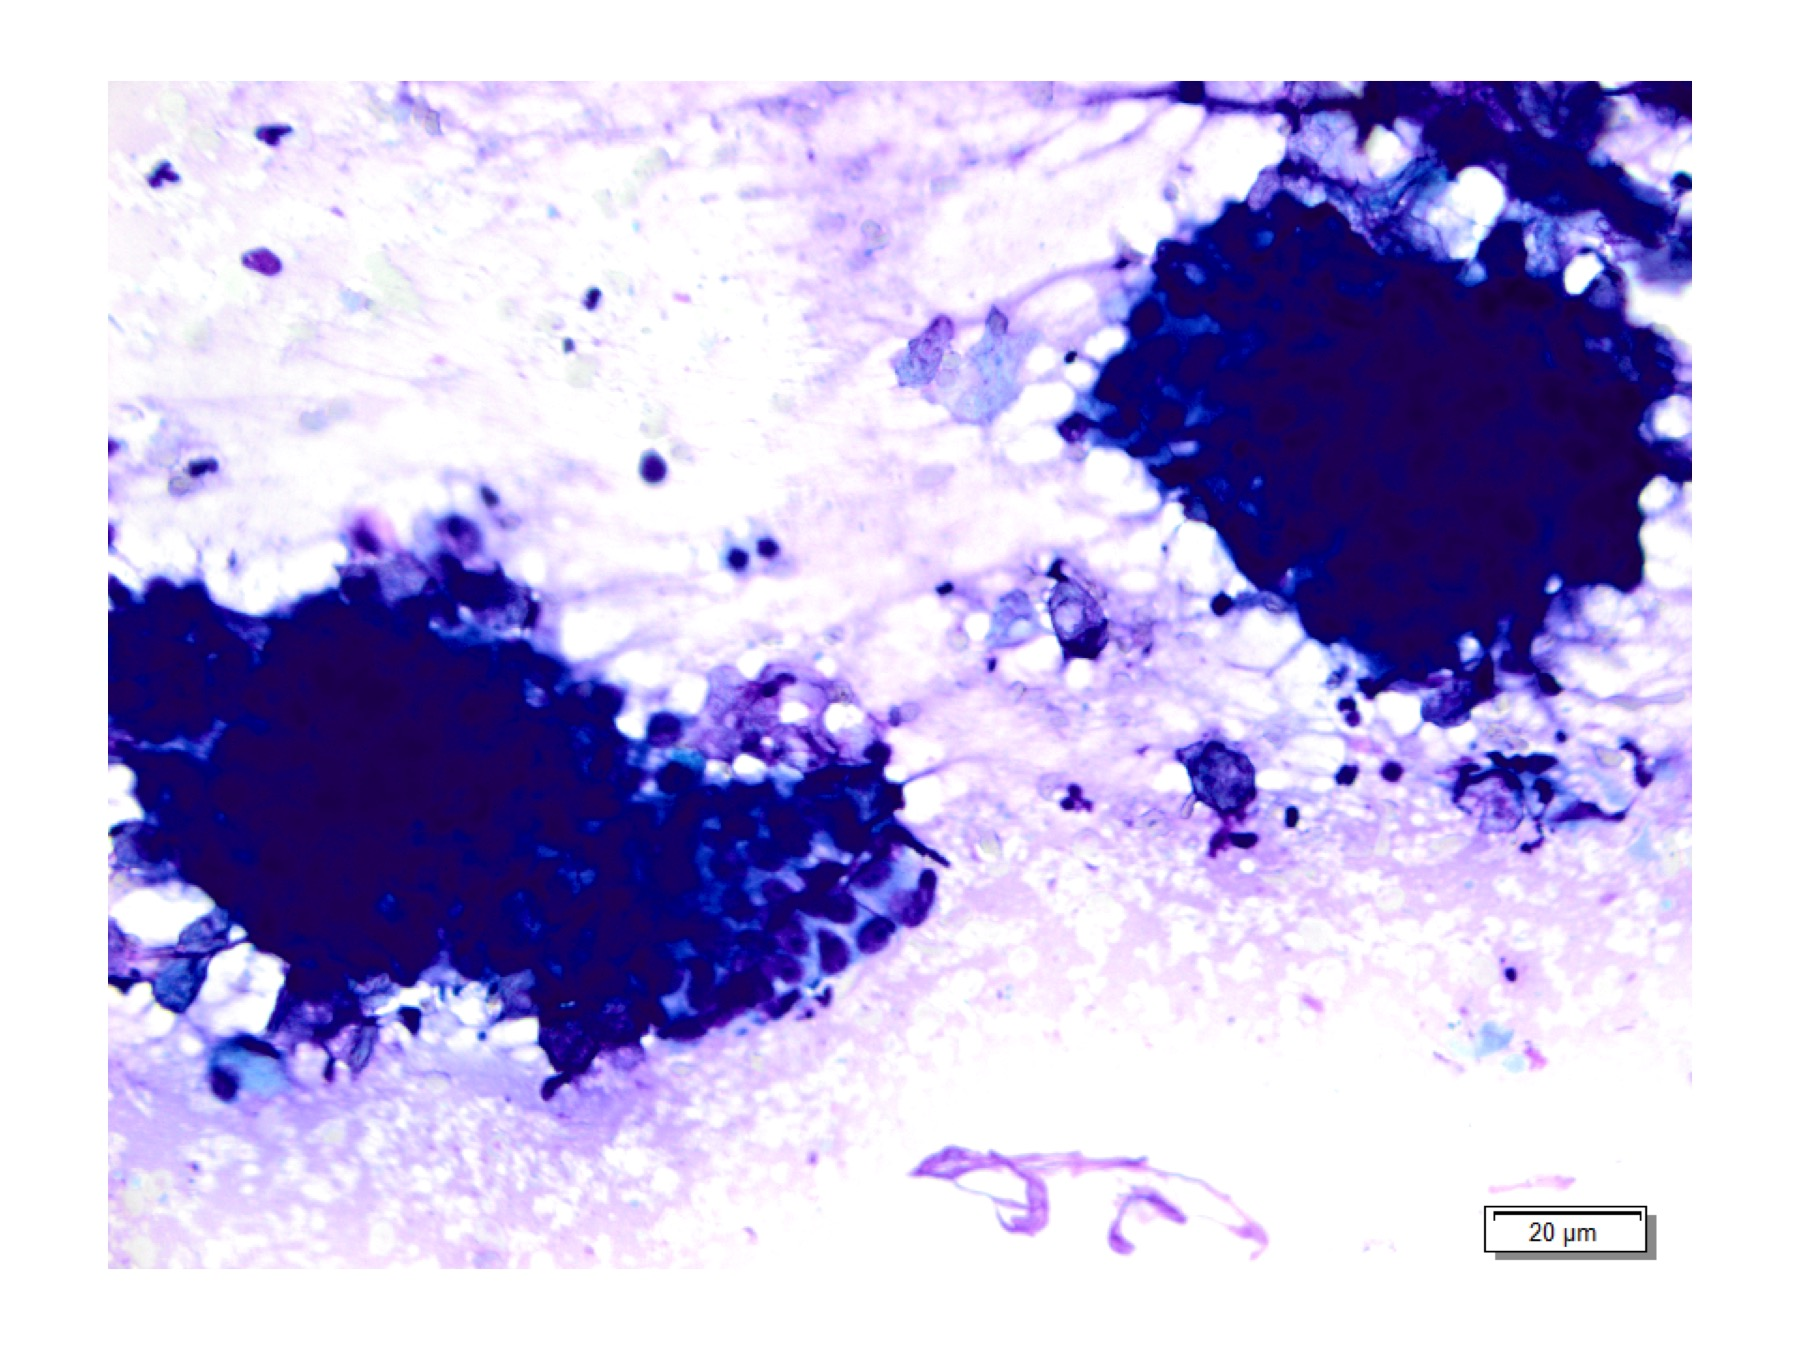 Figure 3: Clusters of basaloid cells, Diff Quik at 40x